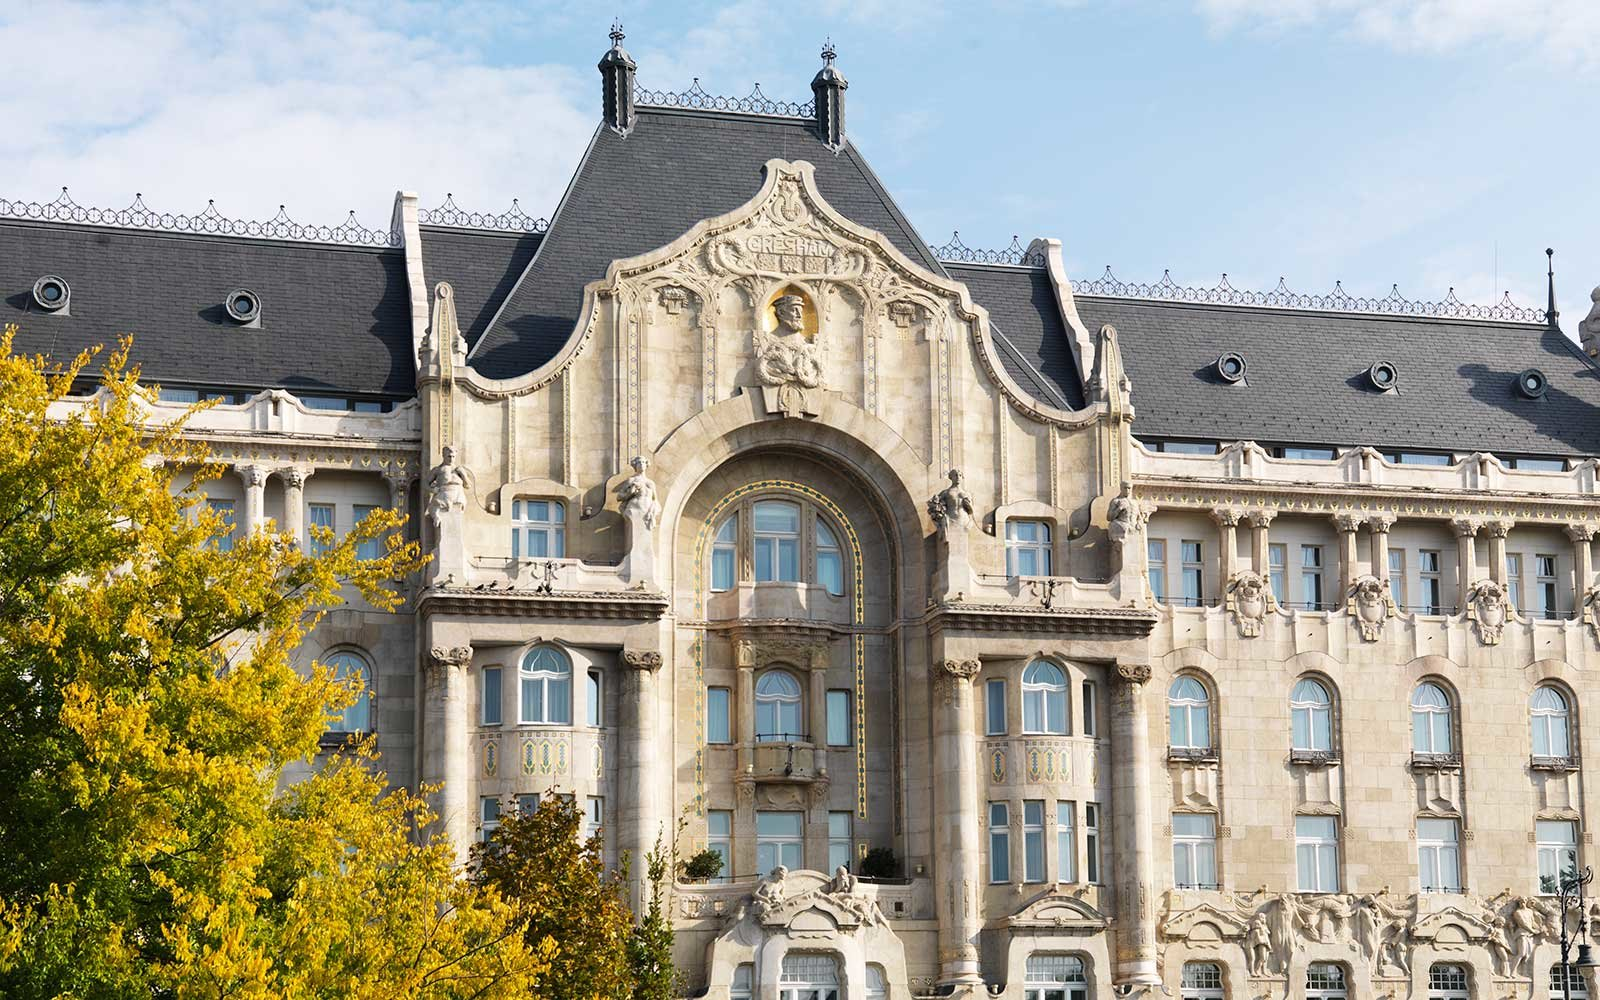 Four Seasons Hotel Gresham Palace Budapest in Europe